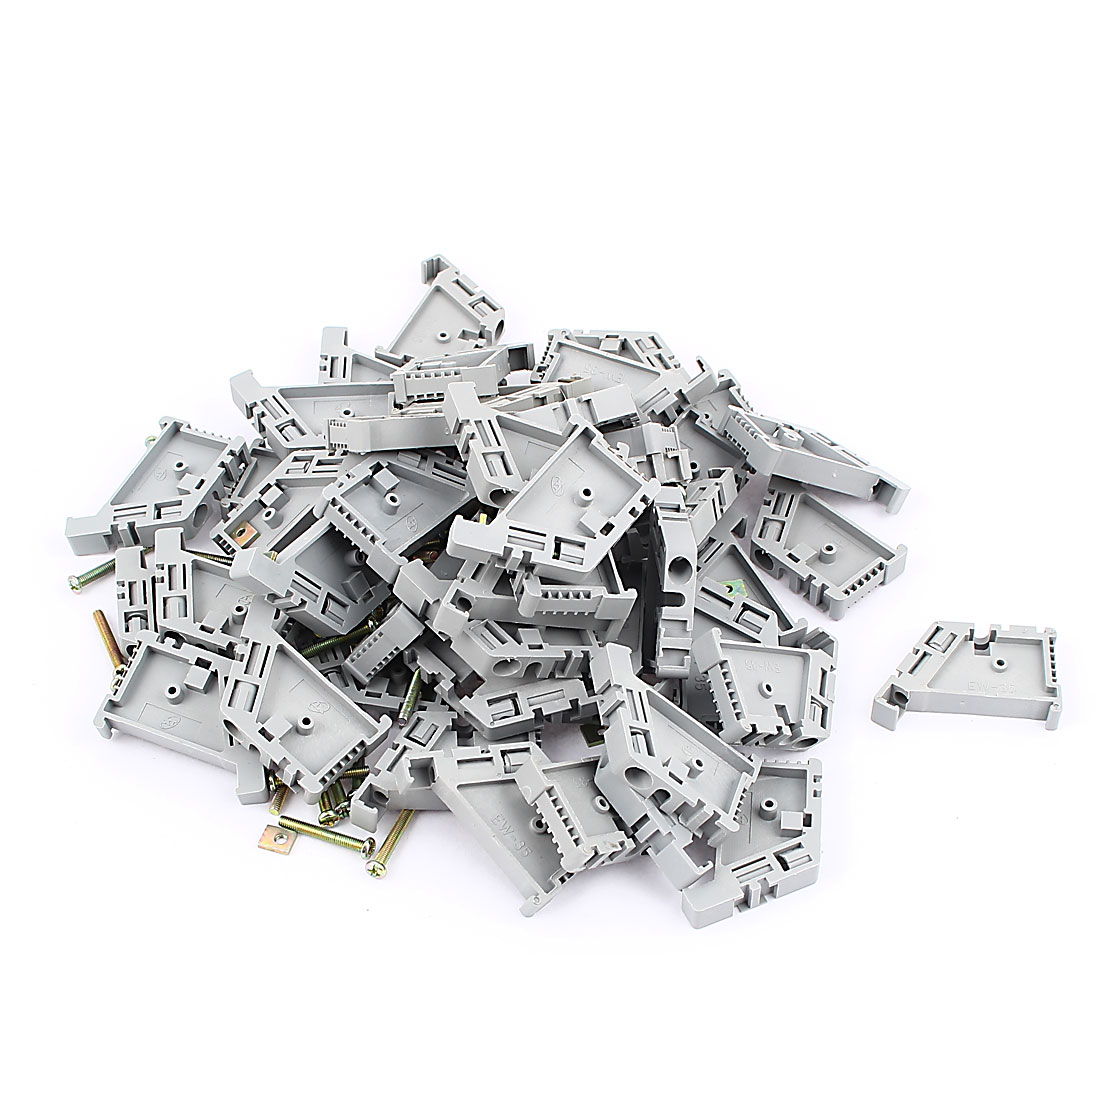 50 Pcs Gray Plastic 35mm DIN Rail Screw Fixed Terminal Block End Stopper Mounting Clips Clamps Connector